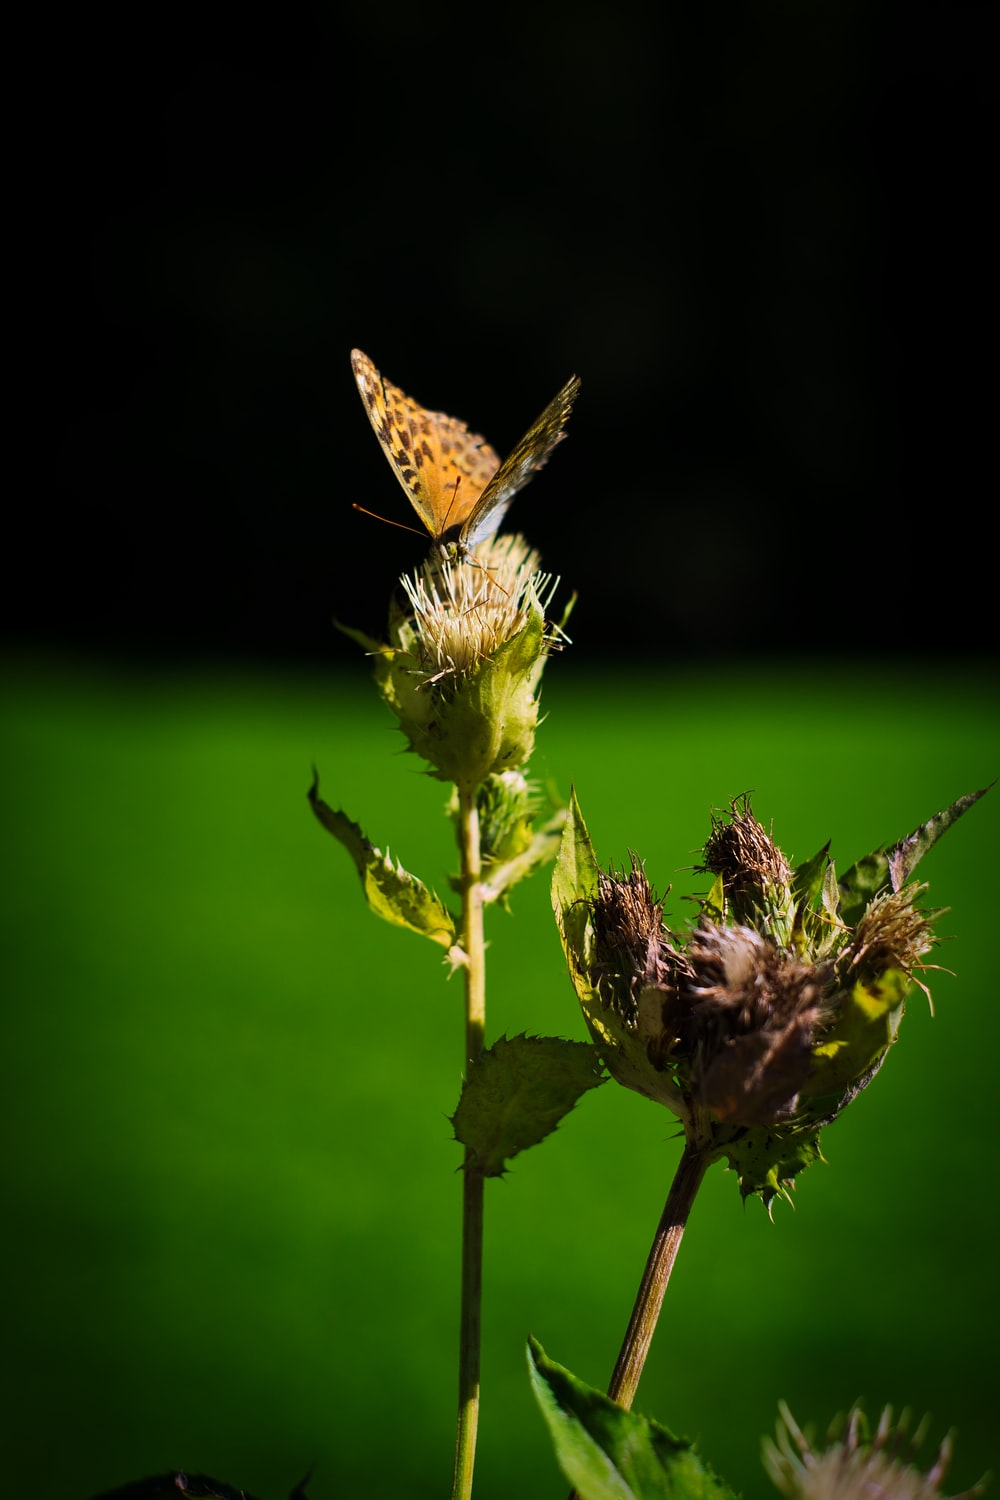 brown butterfly perched on green plant during daytime